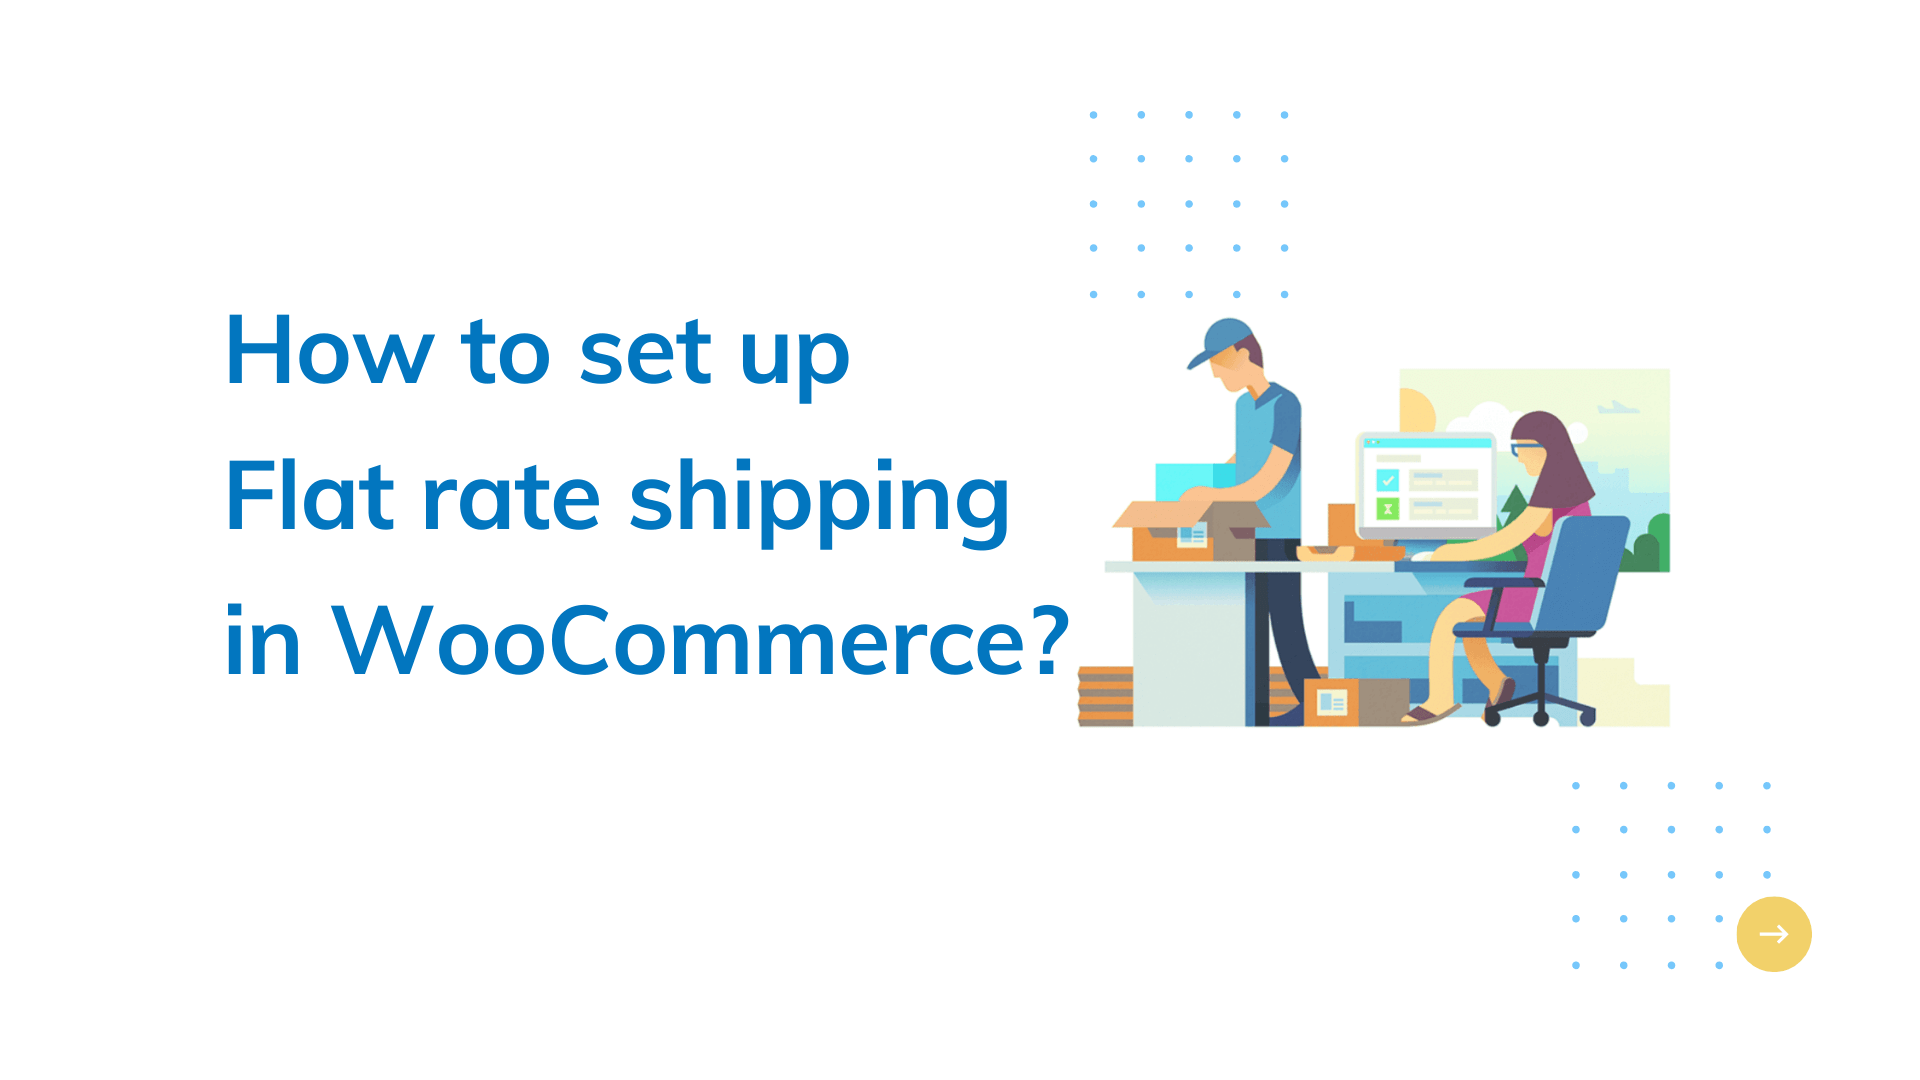 How to Set Up Flat Rate Shipping in WooCommerce?